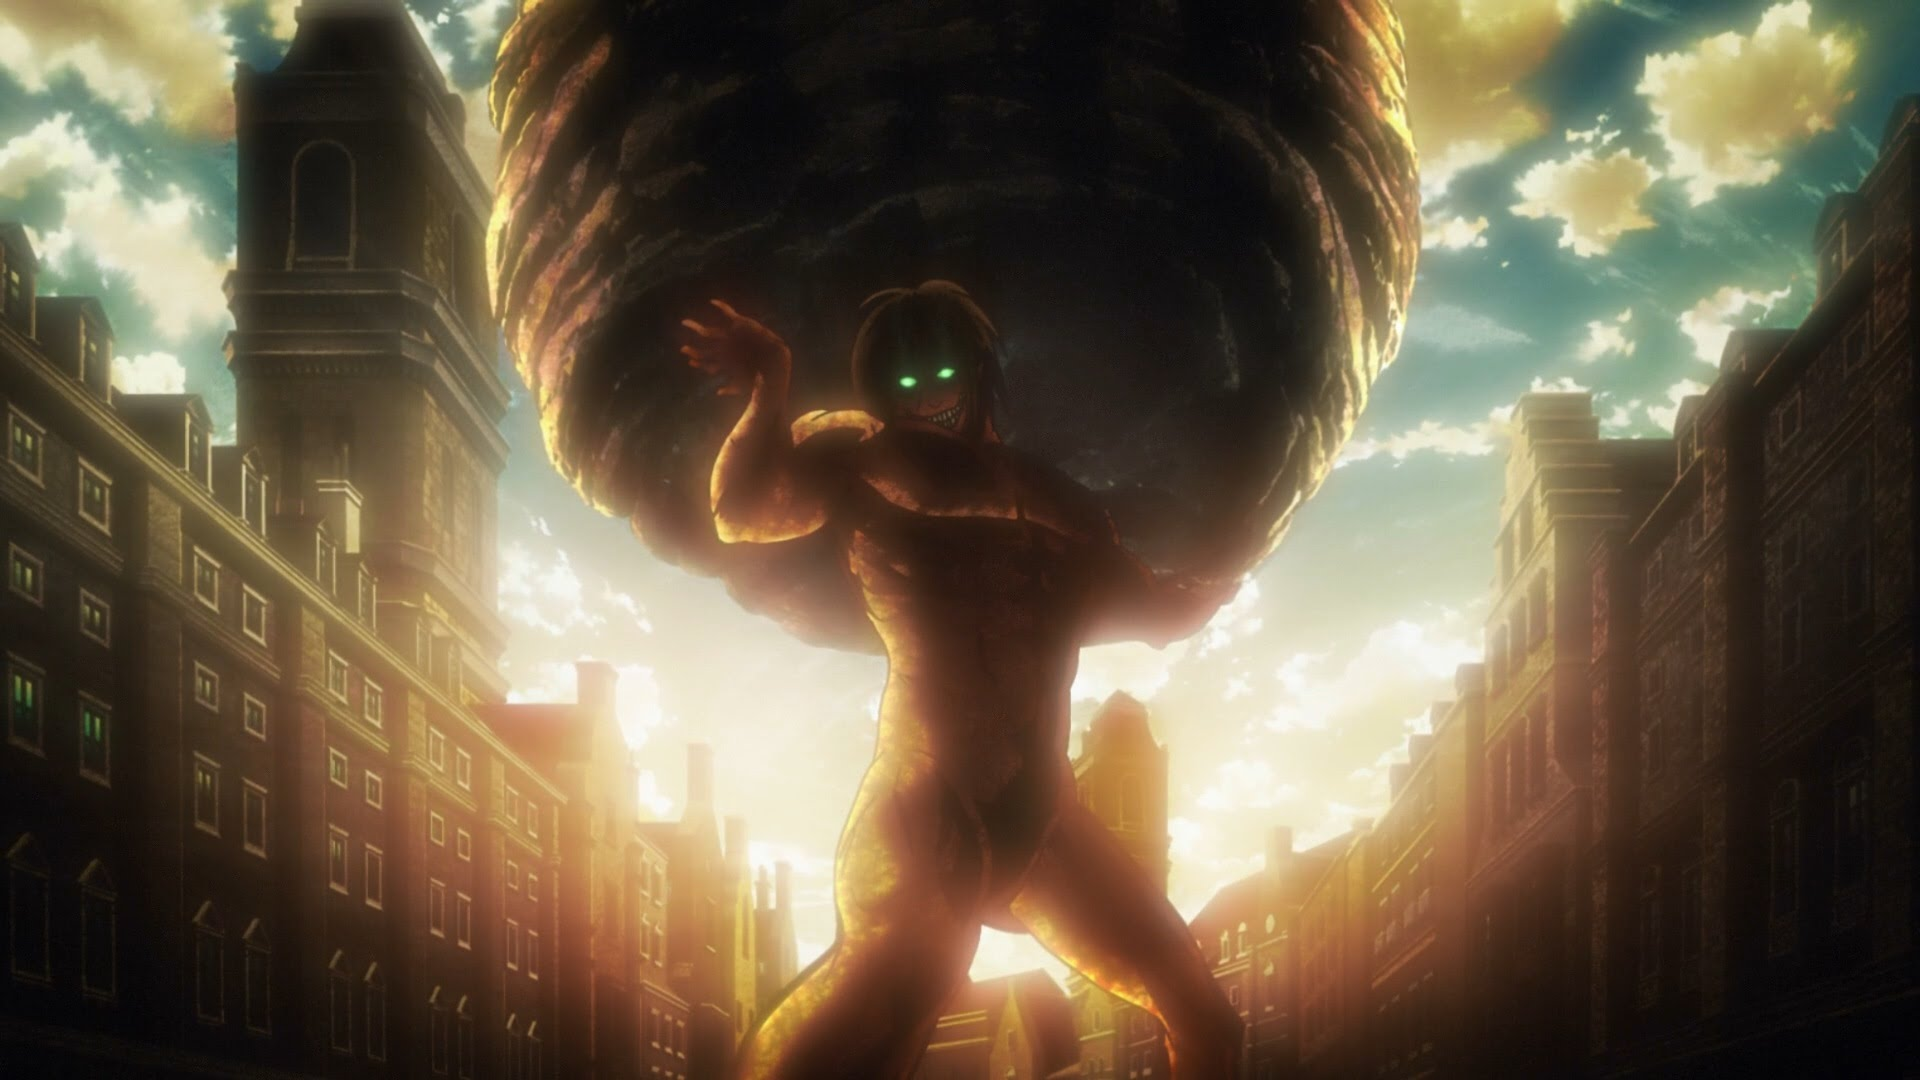 Attack On Titan Hd Wallpaper Background Image 1920x1080 Id 930378 Wallpaper Abyss